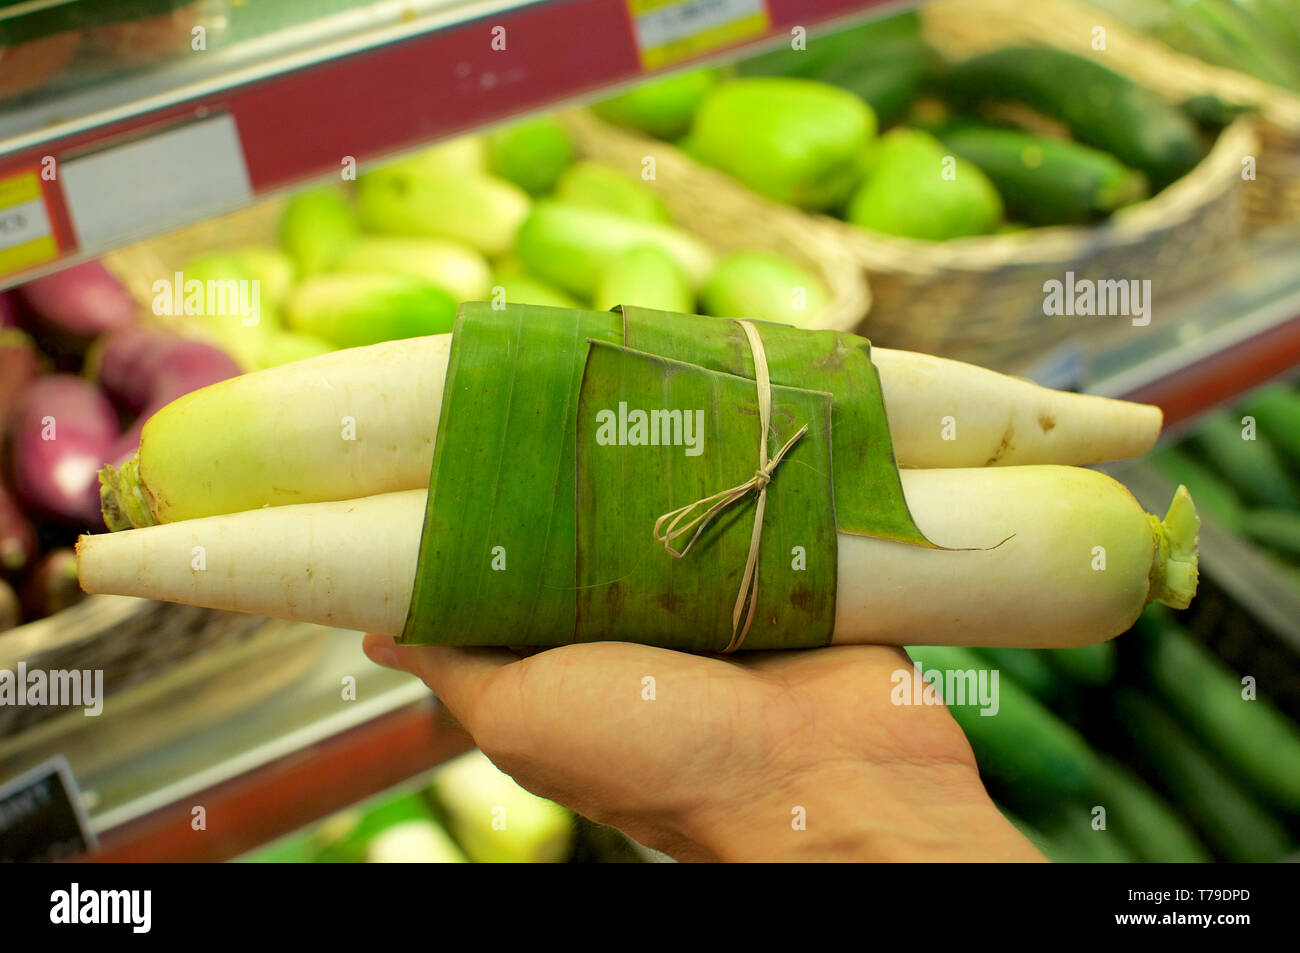 Dikon wrapped in Banana leaf and held in female hands. This is an excellent solution how replace plastic packaging and reduce the waist of it - Bali,  - Stock Image